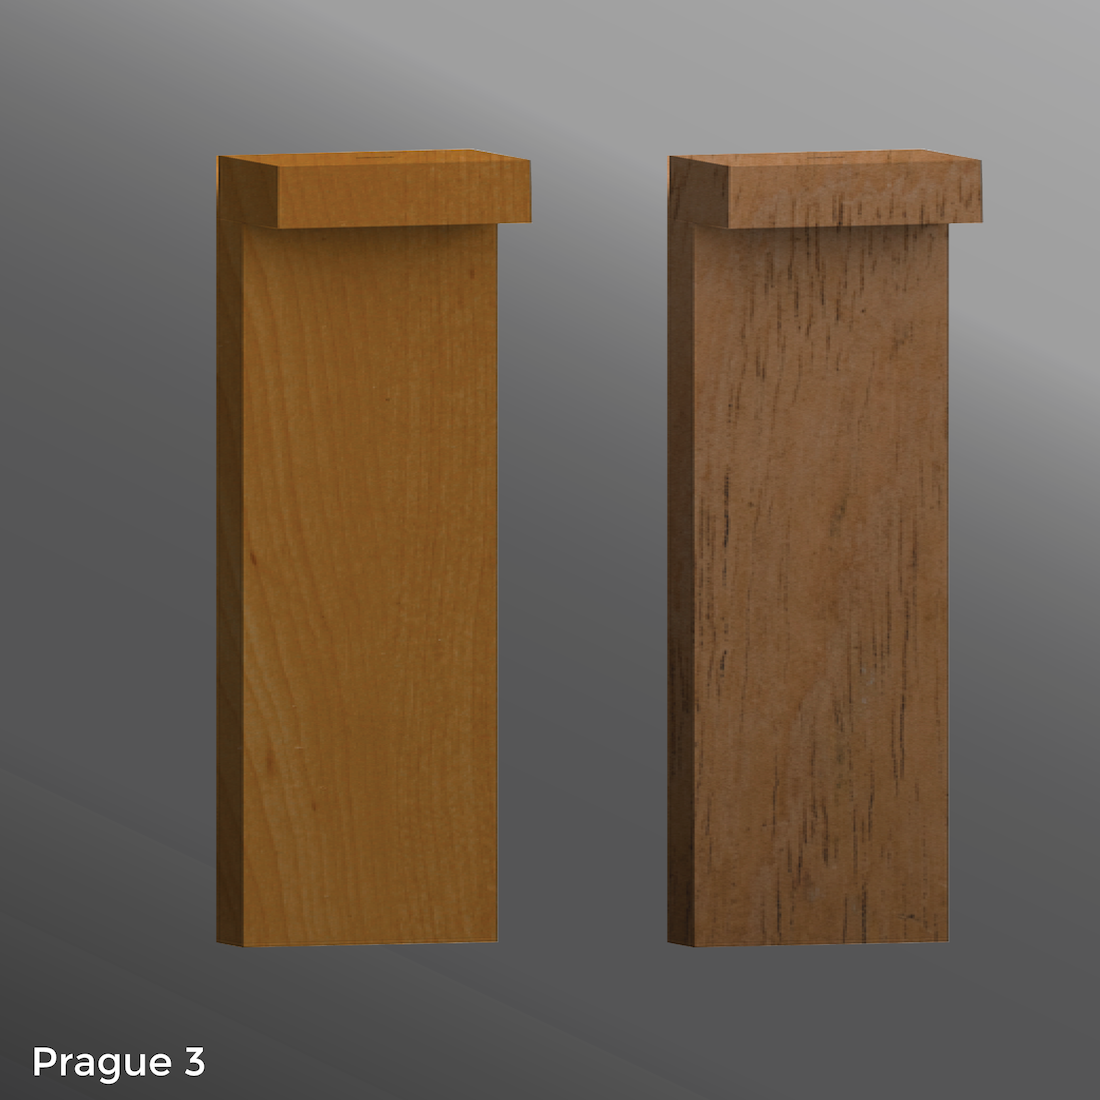 Click to view Ligman Lighting's Prague Bollard - Woodland Series (model UPRA-100XX).